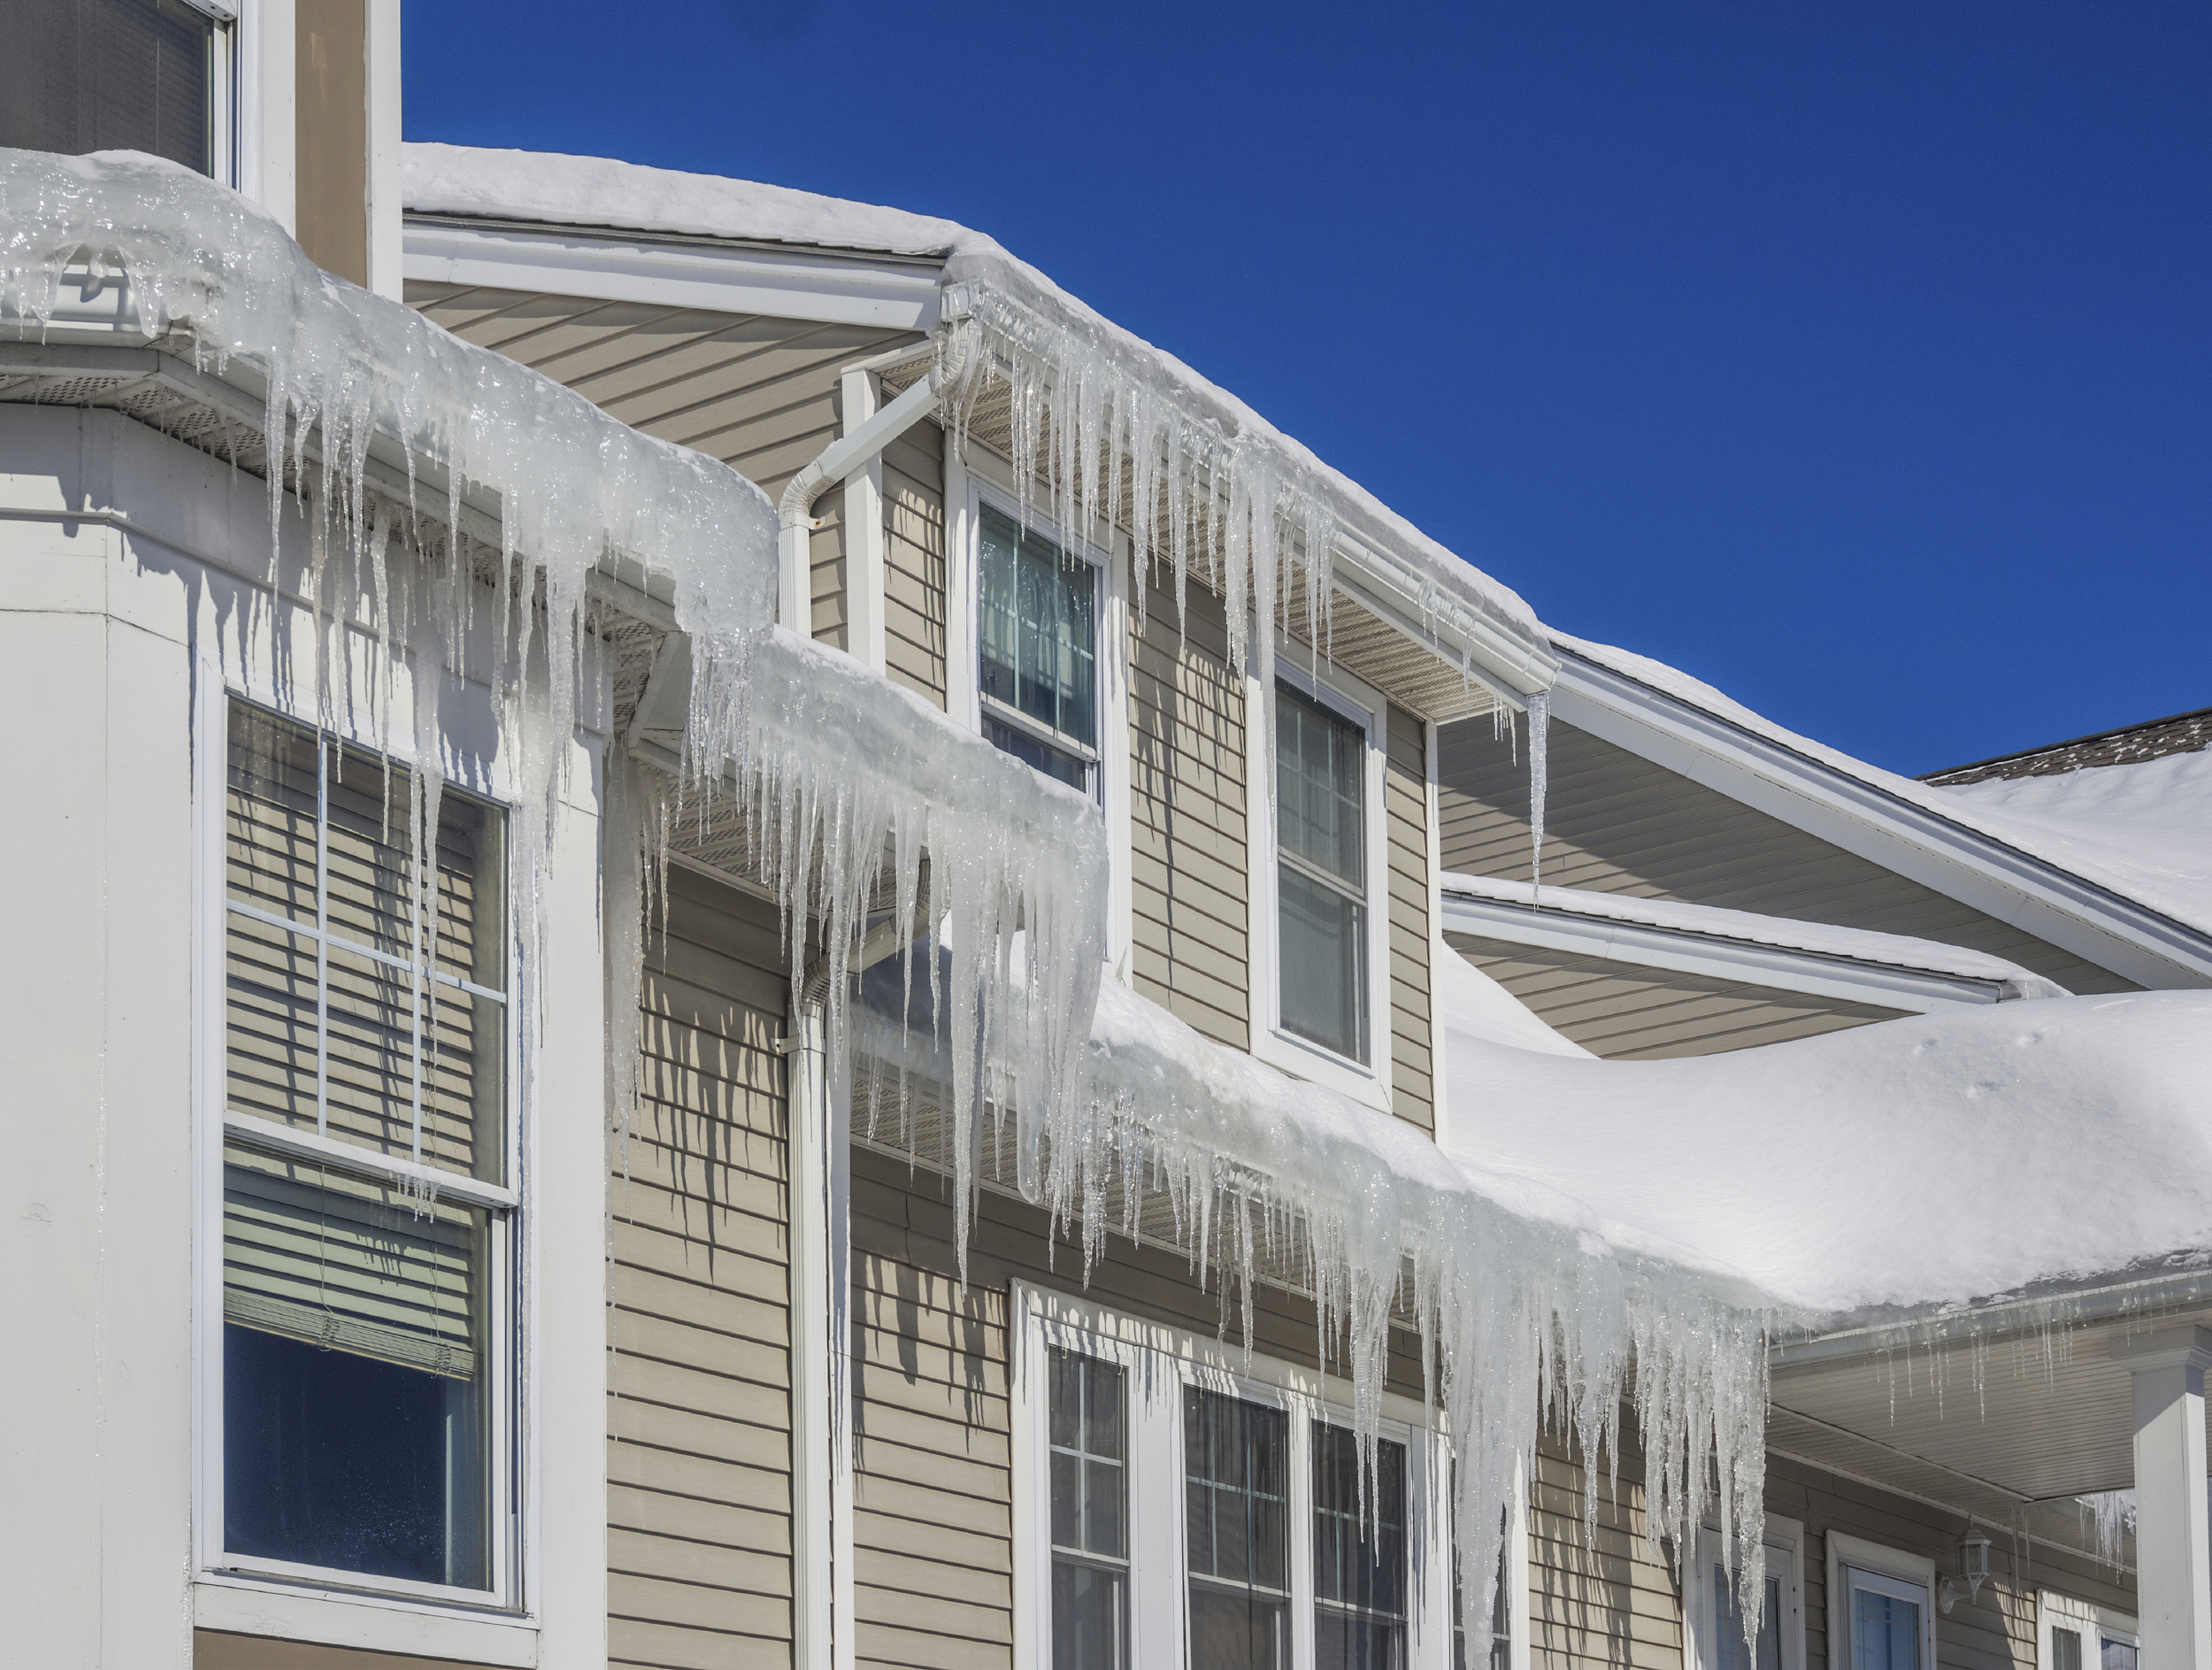 Rands Roofing has professional equipment to remove ice dams quickly and safely without damage to your existing roofing or rain gutters.